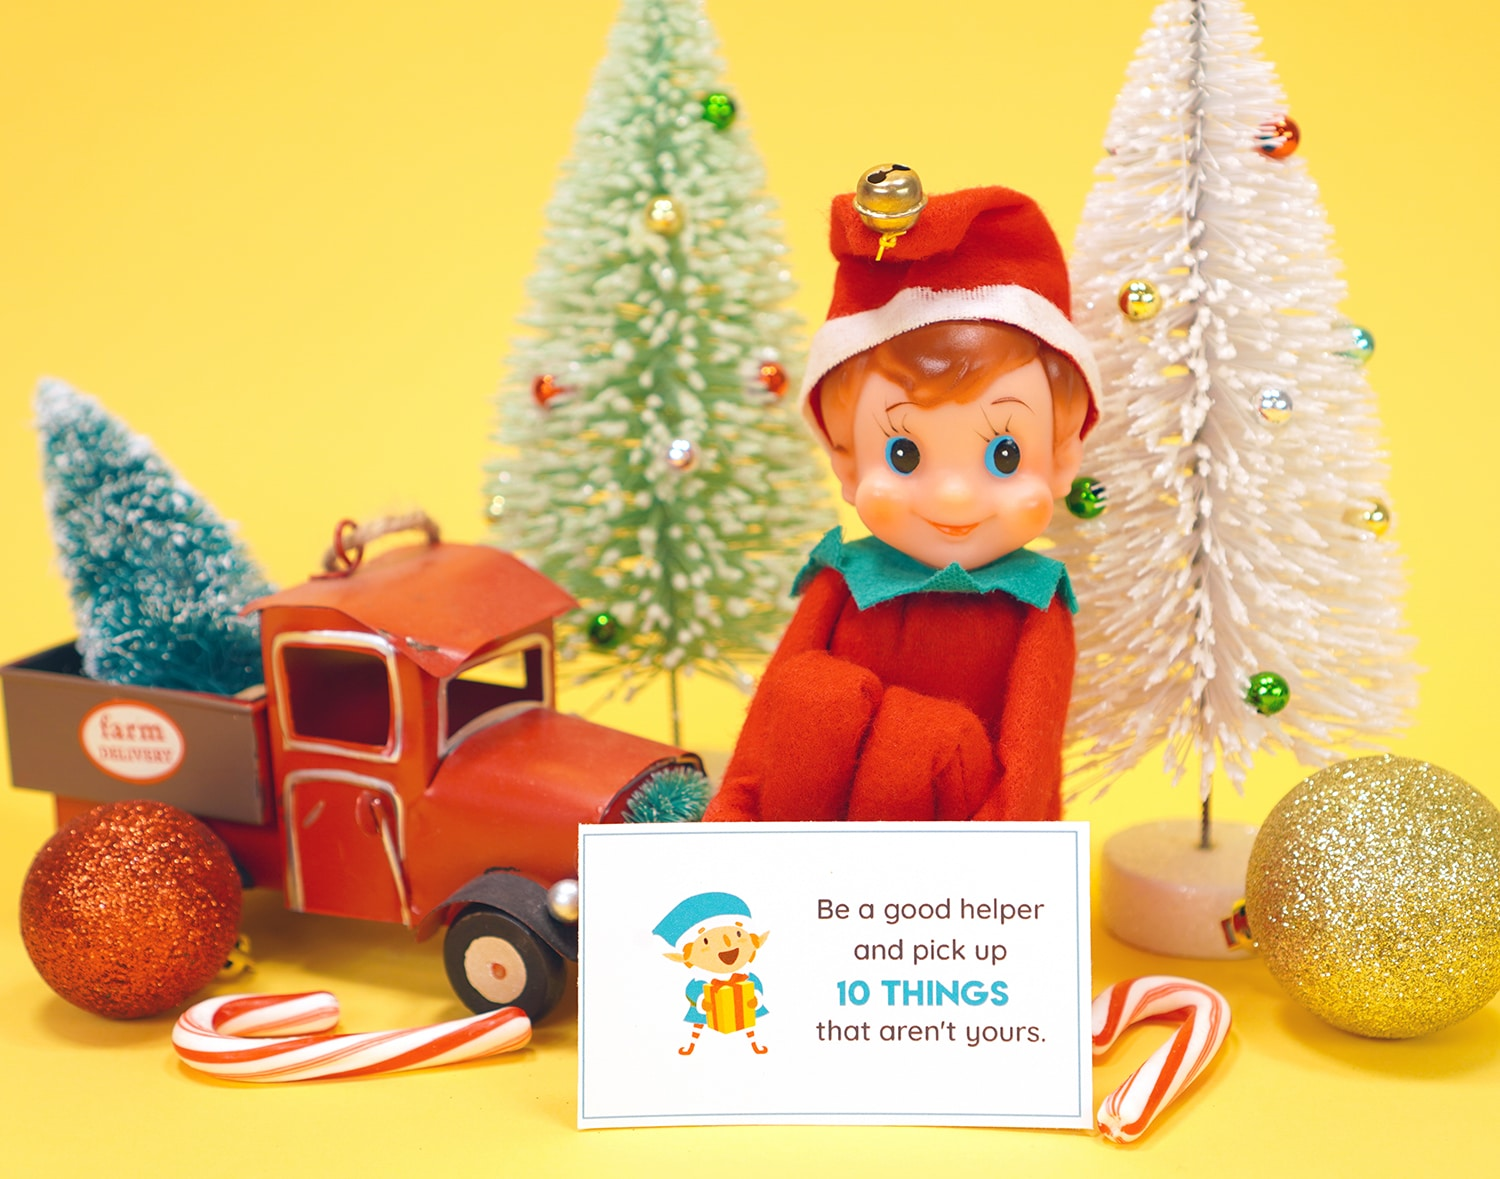 Vintage shelf sitter elf doll with Elf on the Shelf printable note card, candy canes, toy truck, ornaments, and Christmas decorations on yellow background